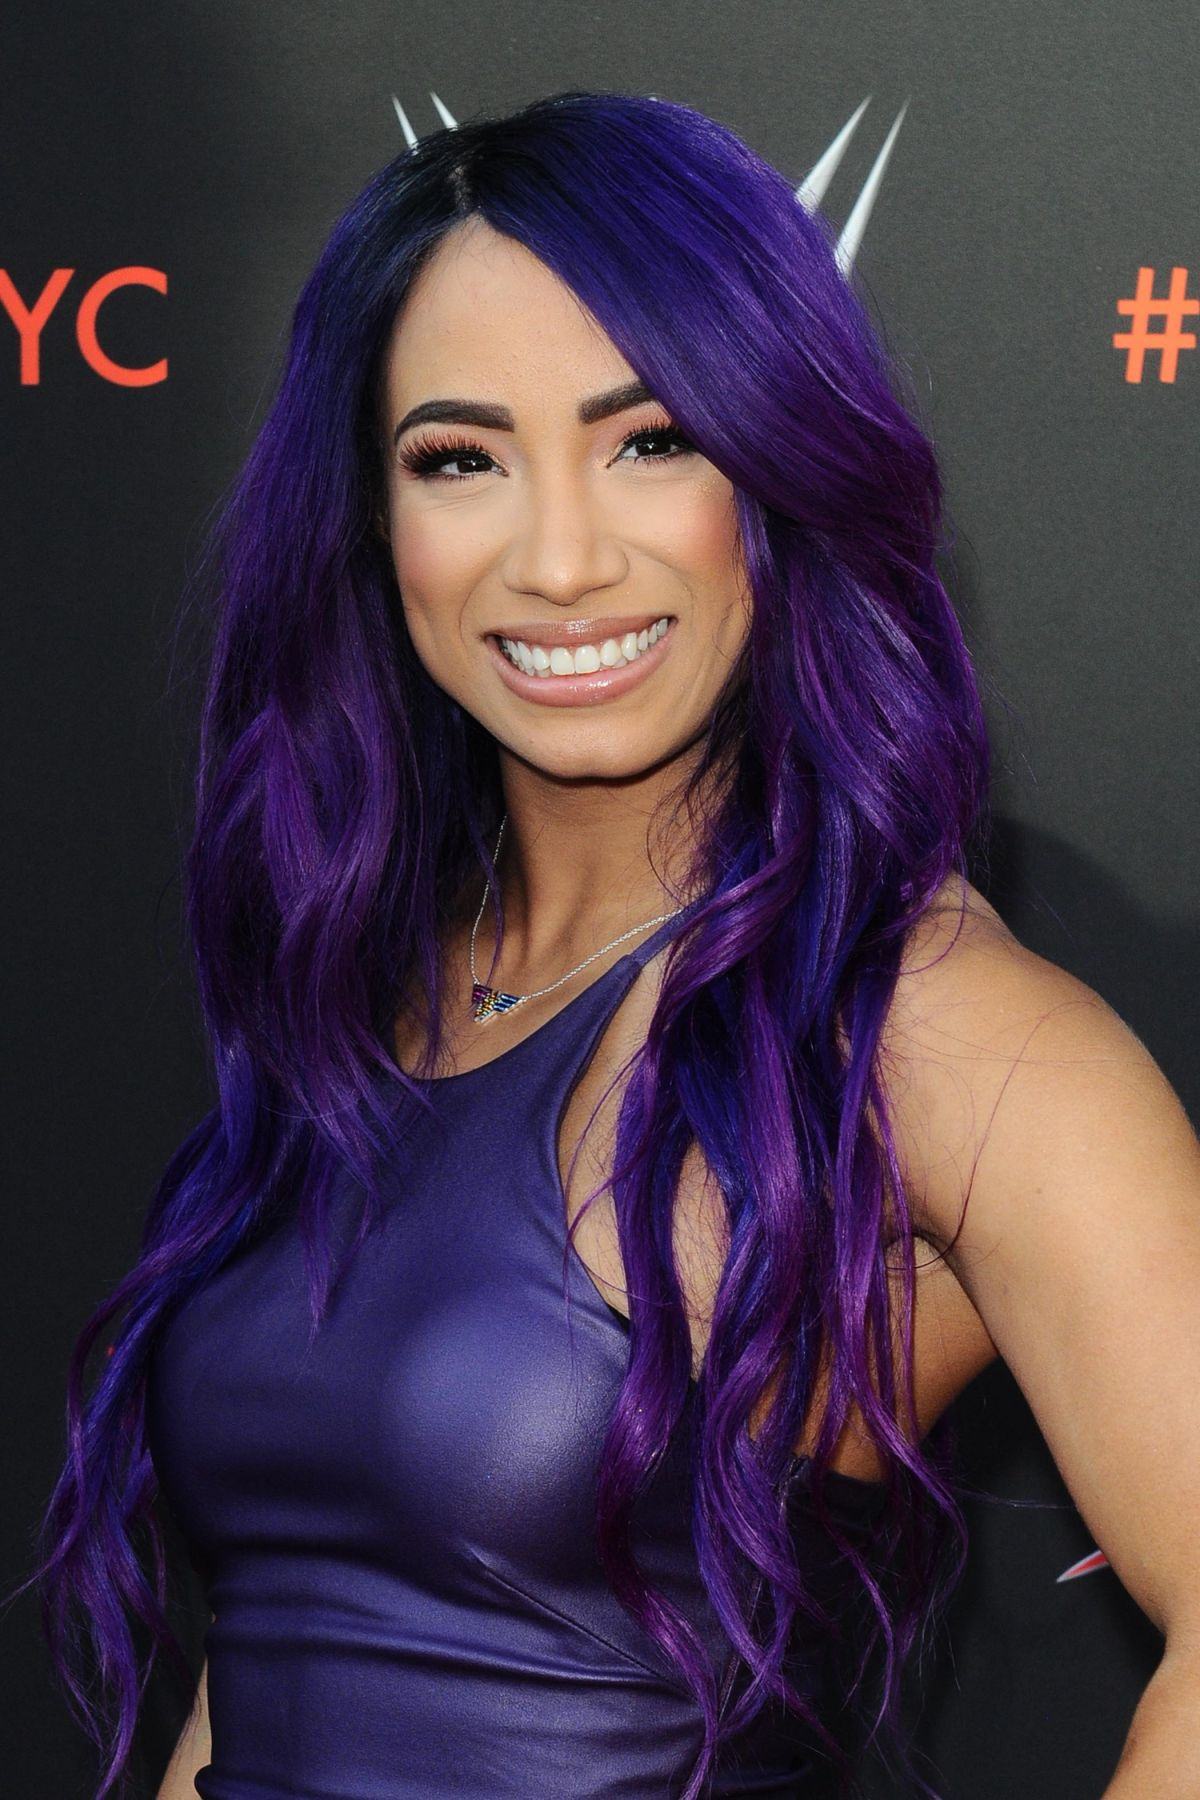 SASHA BANKS at WWE FYC Event in Los Angeles 06/06/2018 ...